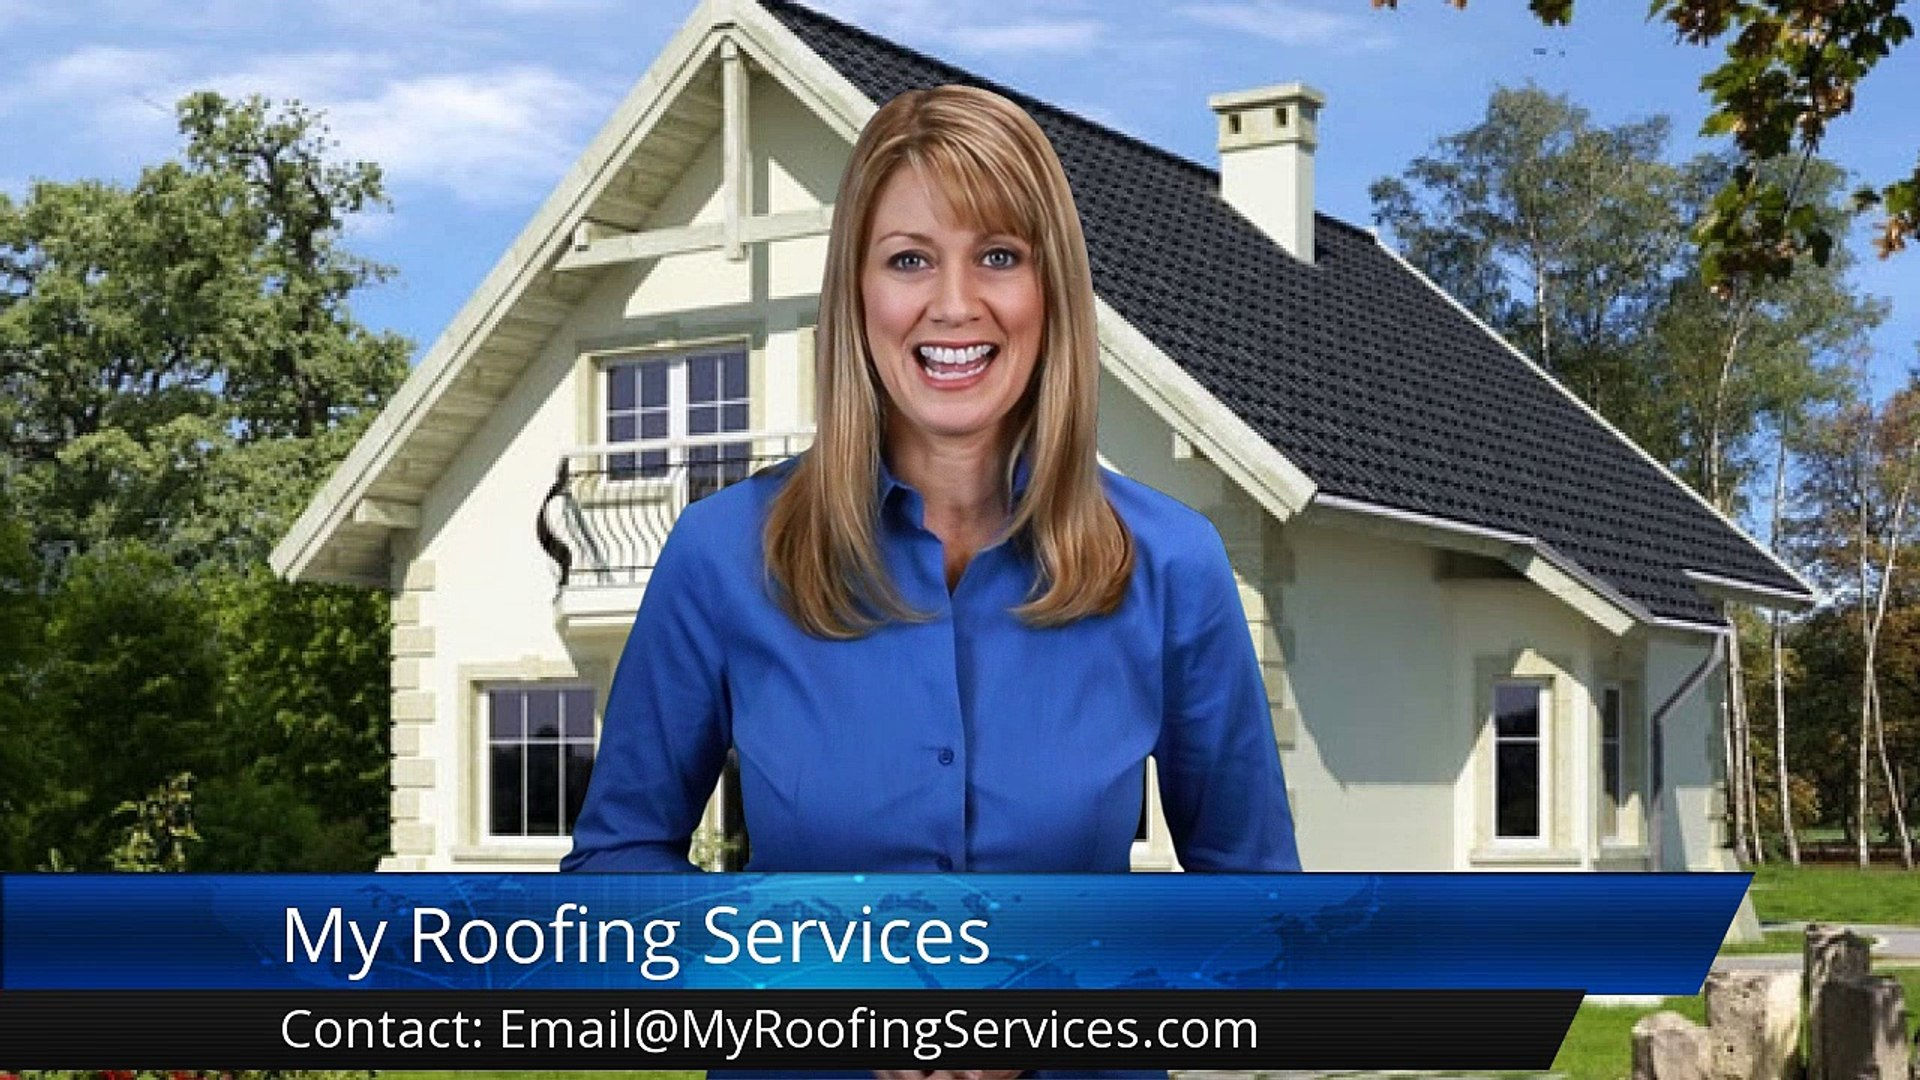 My Roofing Services AmazingFive Star Review by Peter Jo